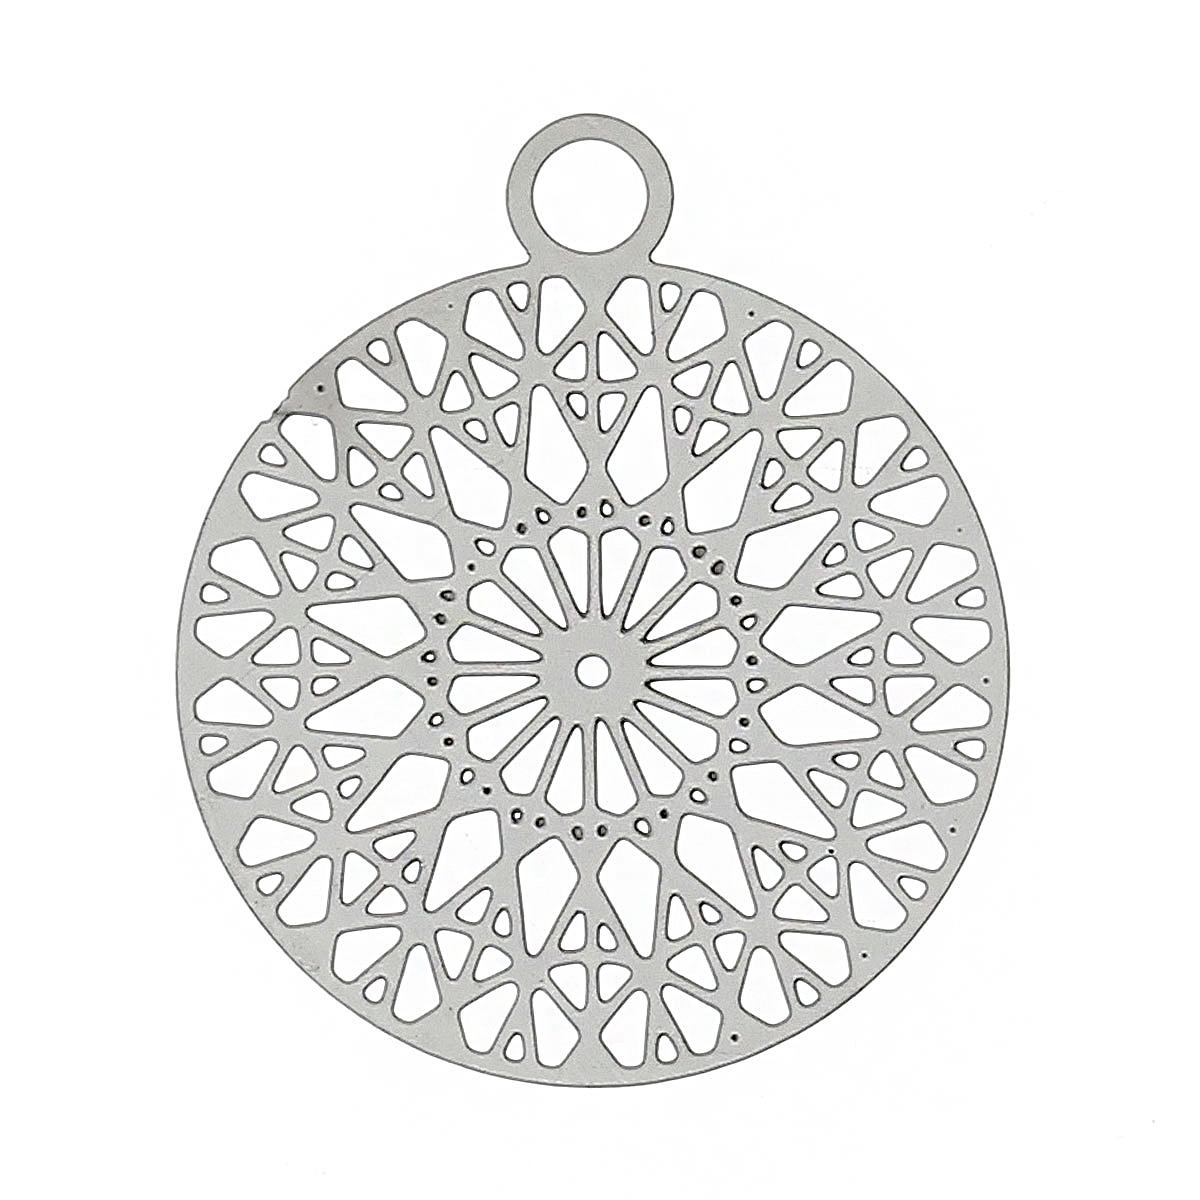 "8SEASONS Stainless Steel Charm Pendants Round Silver Tone Color Hollow Flower 22mm(<font><b>7</b></font>/<font><b>8</b></font>"")<font><b>x</b></font> 18mm(6/<font><b>8</b></font>""),<font><b>20</b></font> PCs"